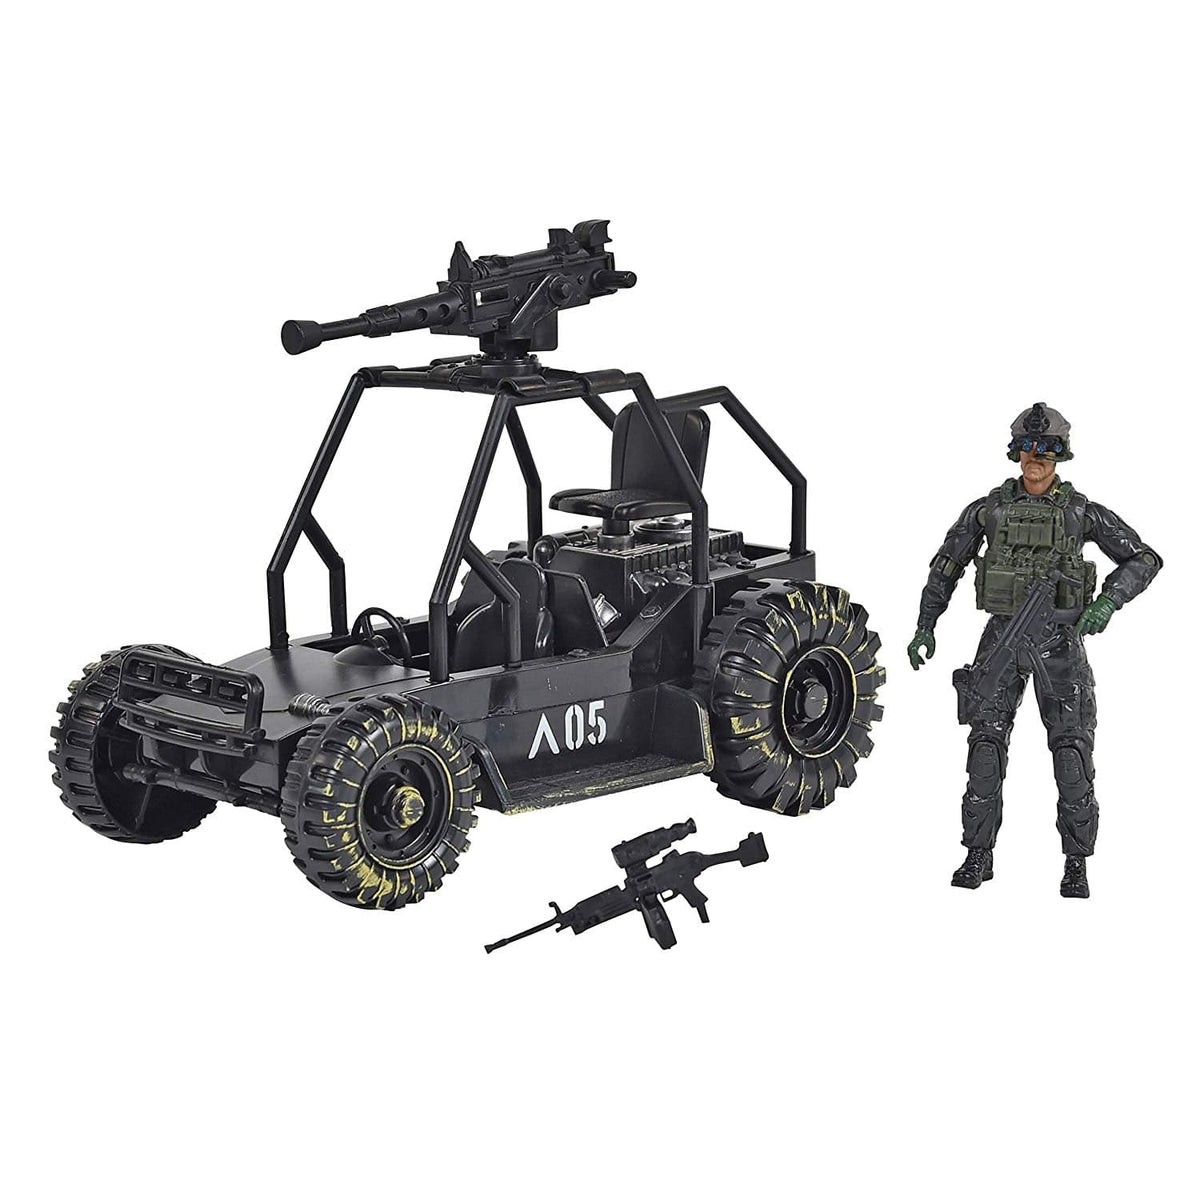 Sunny Days Elite Force - Delta Force Attack Vehicle - Legacy Toys